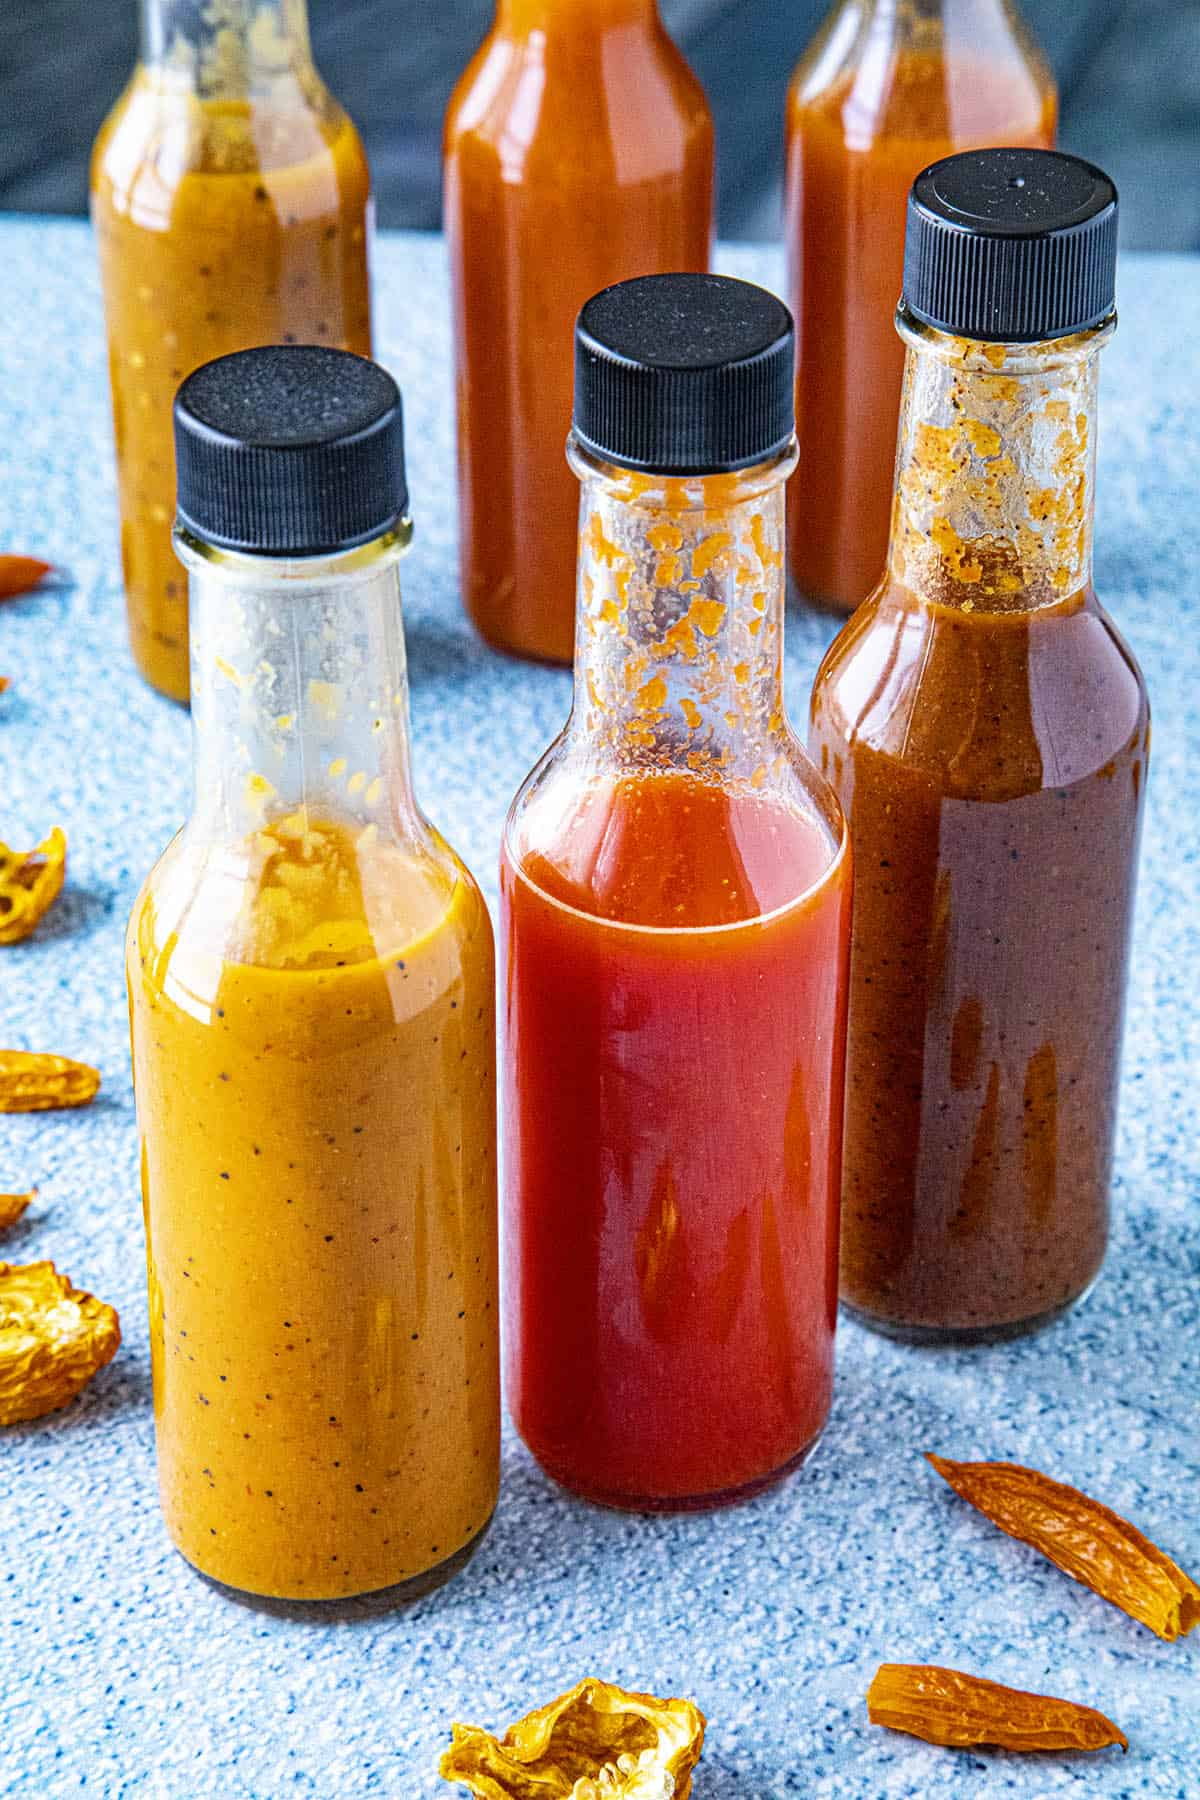 3 bottles of hot sauce, each made from dried chili peppers